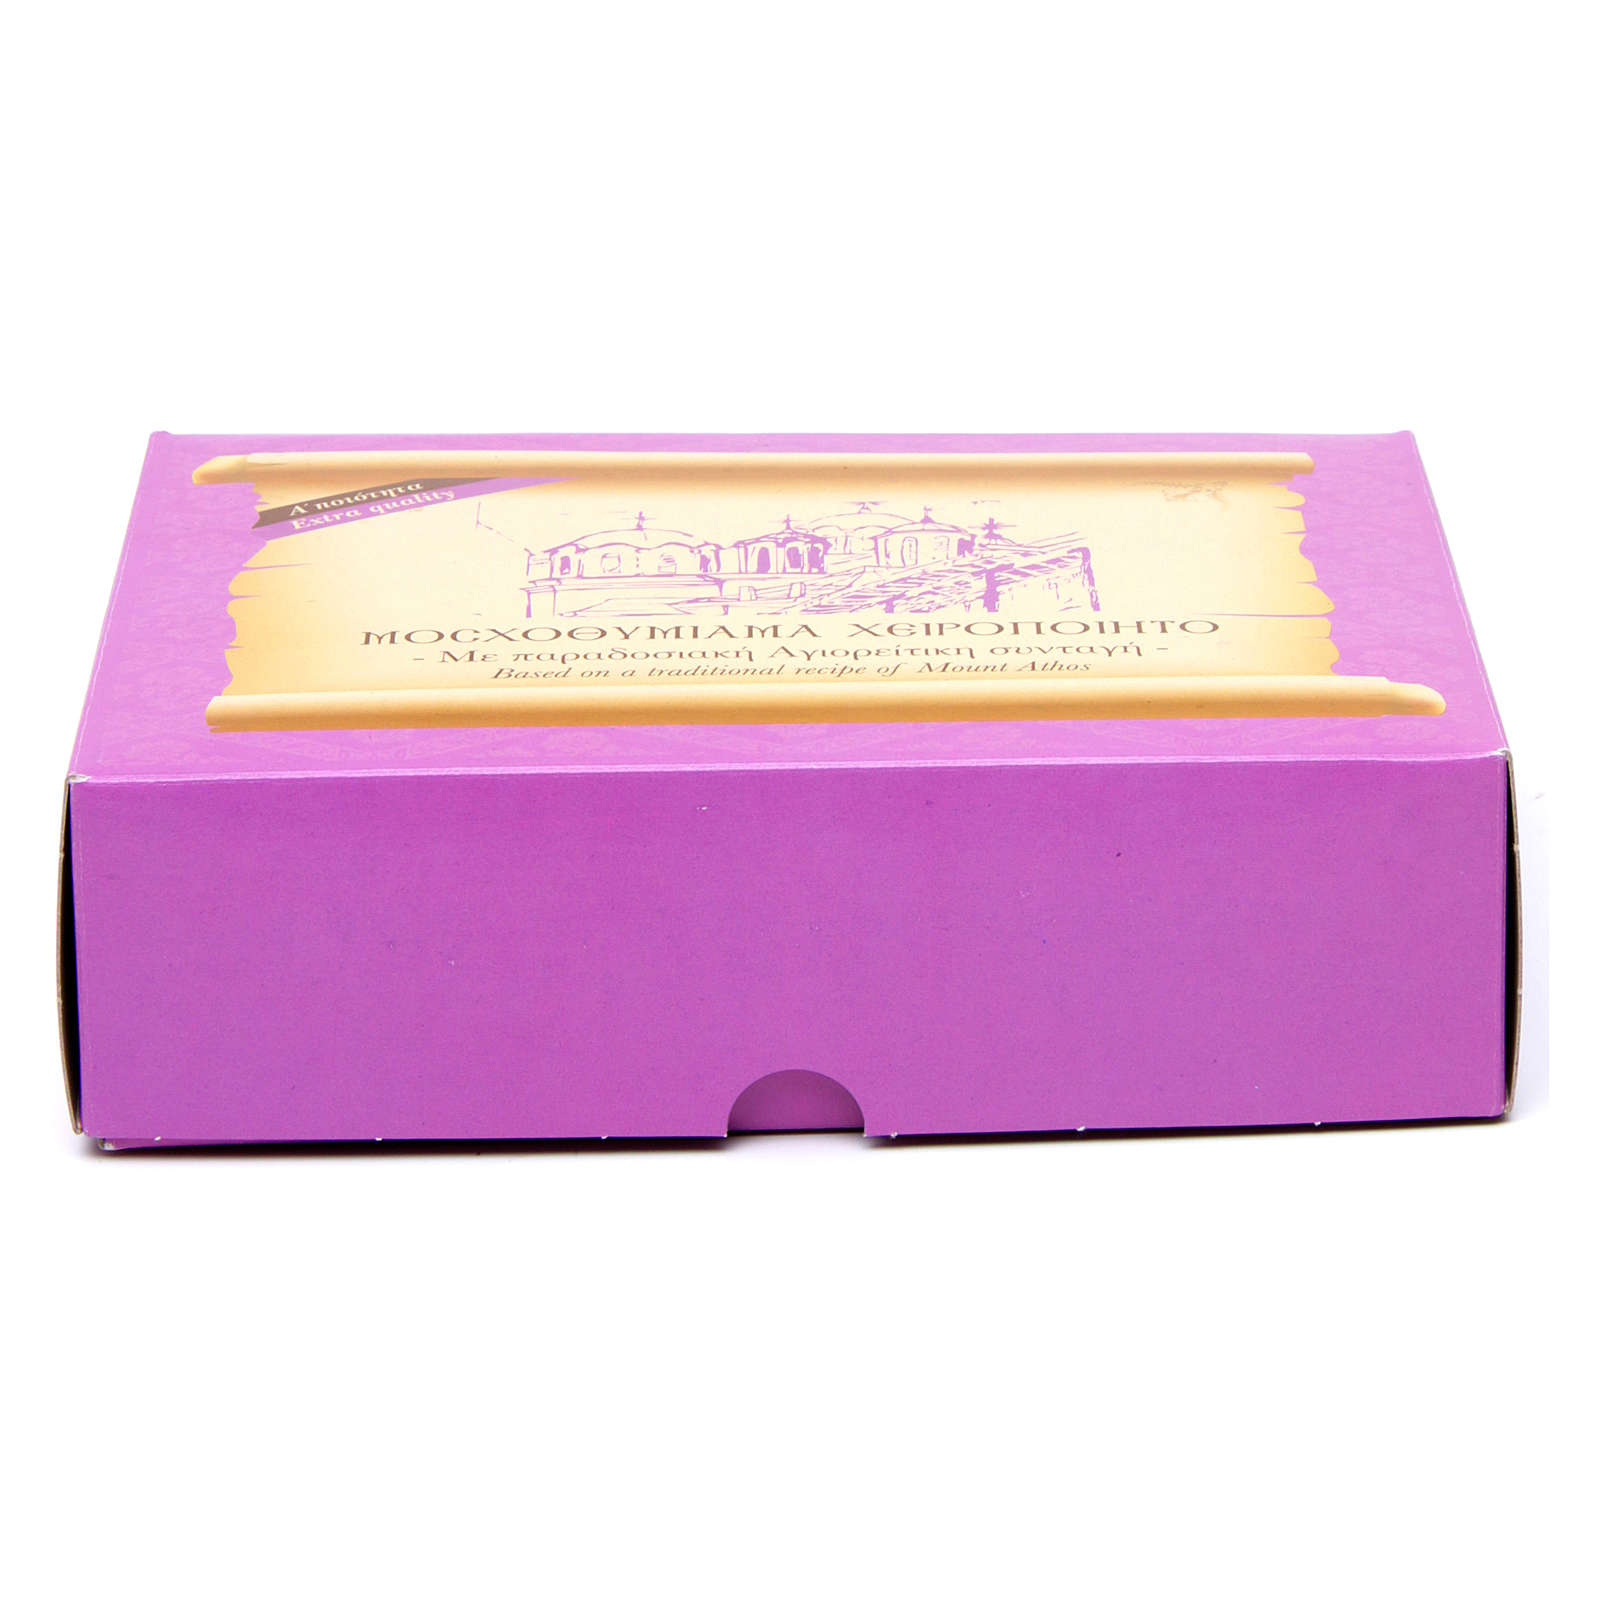 Basilica perfumed Greek incense 1 kg 3